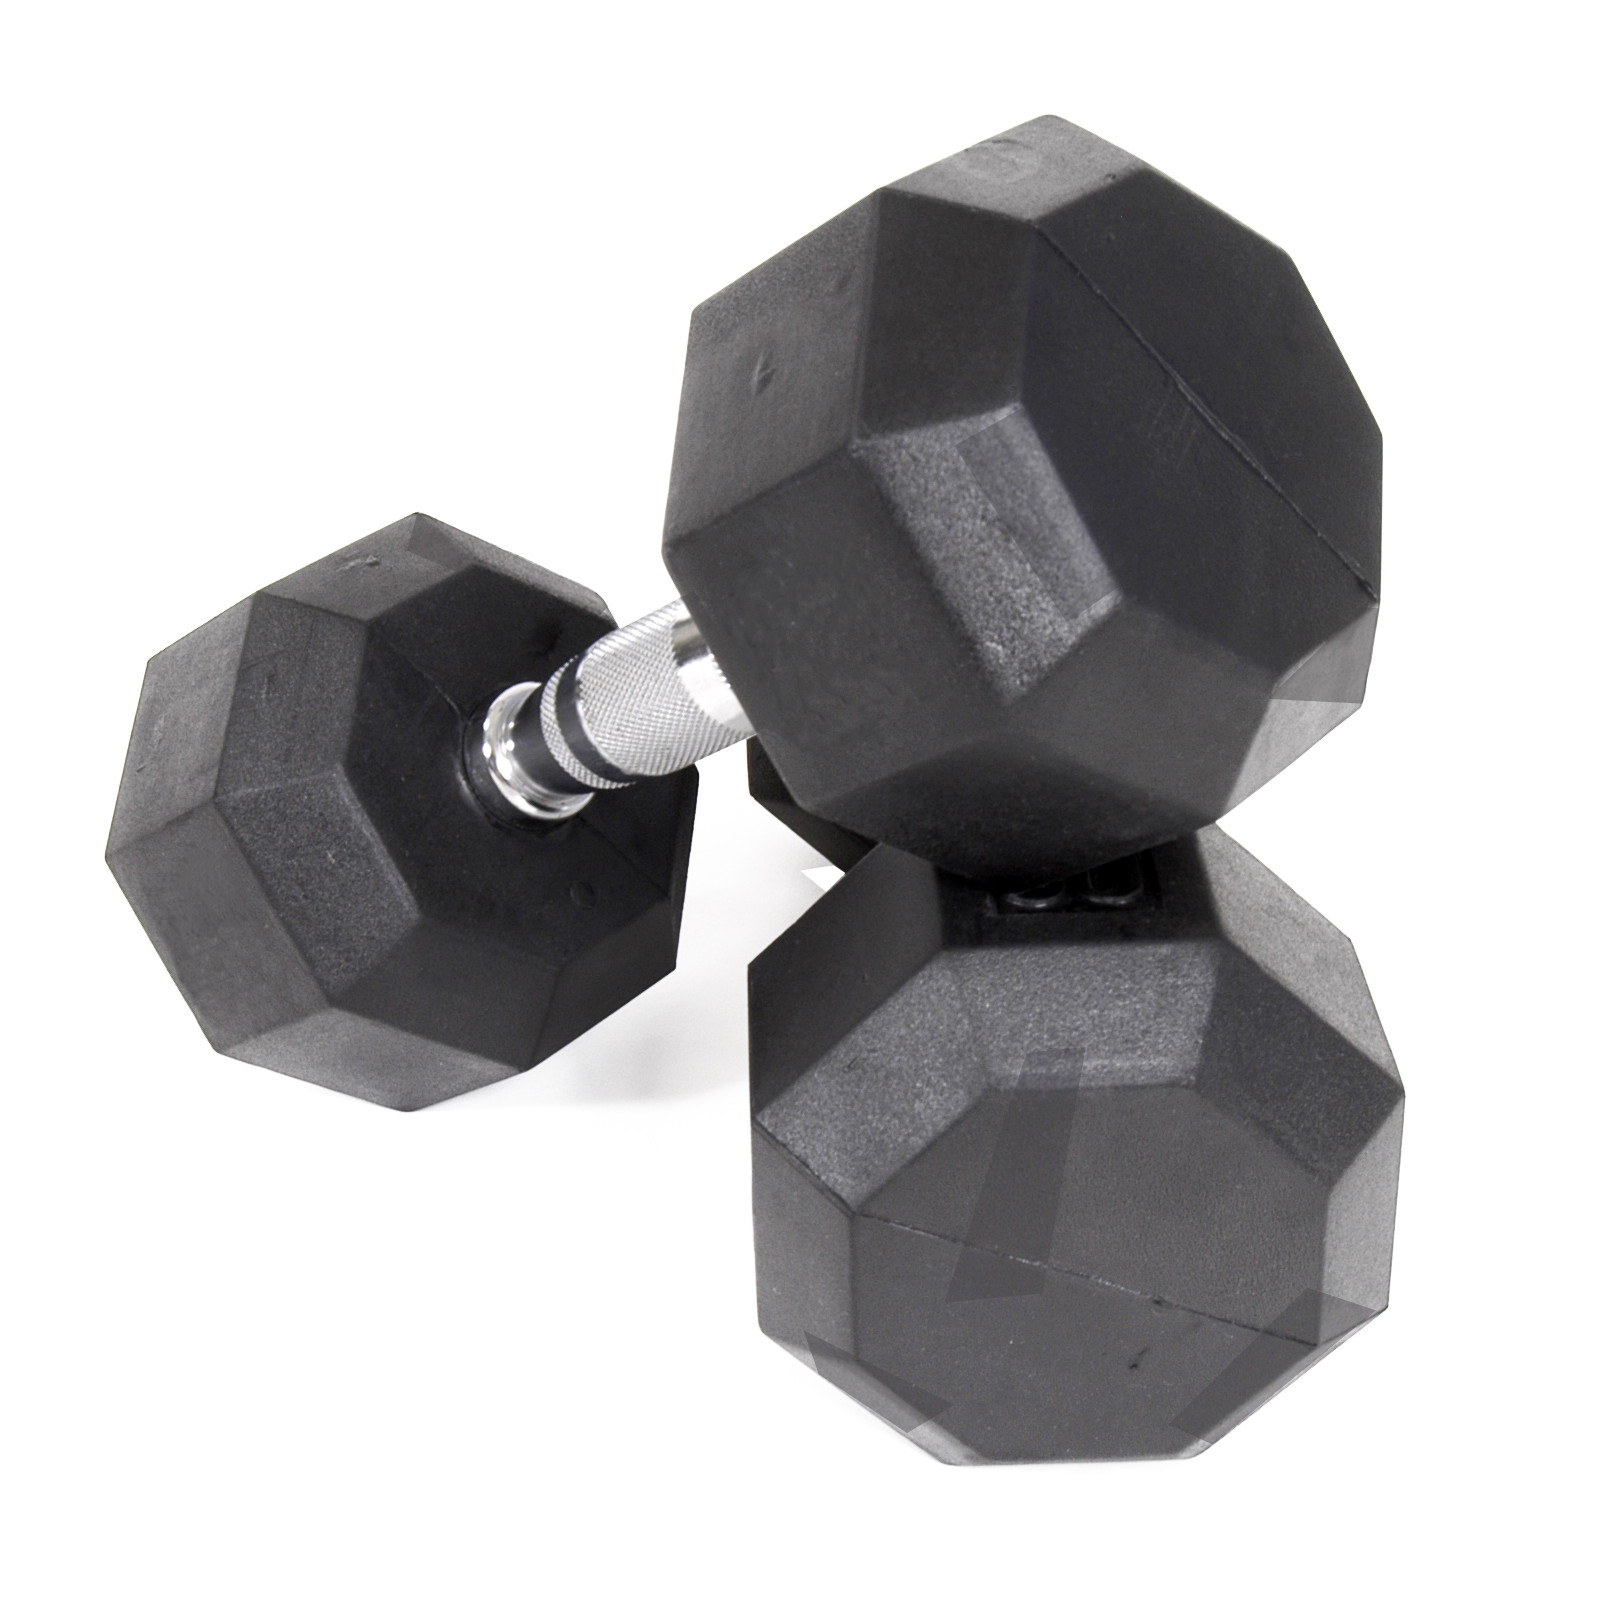 Troy VTX 8 Sided Rubber Encased Dumbbells 3-25lbs Set SD-003-025-R